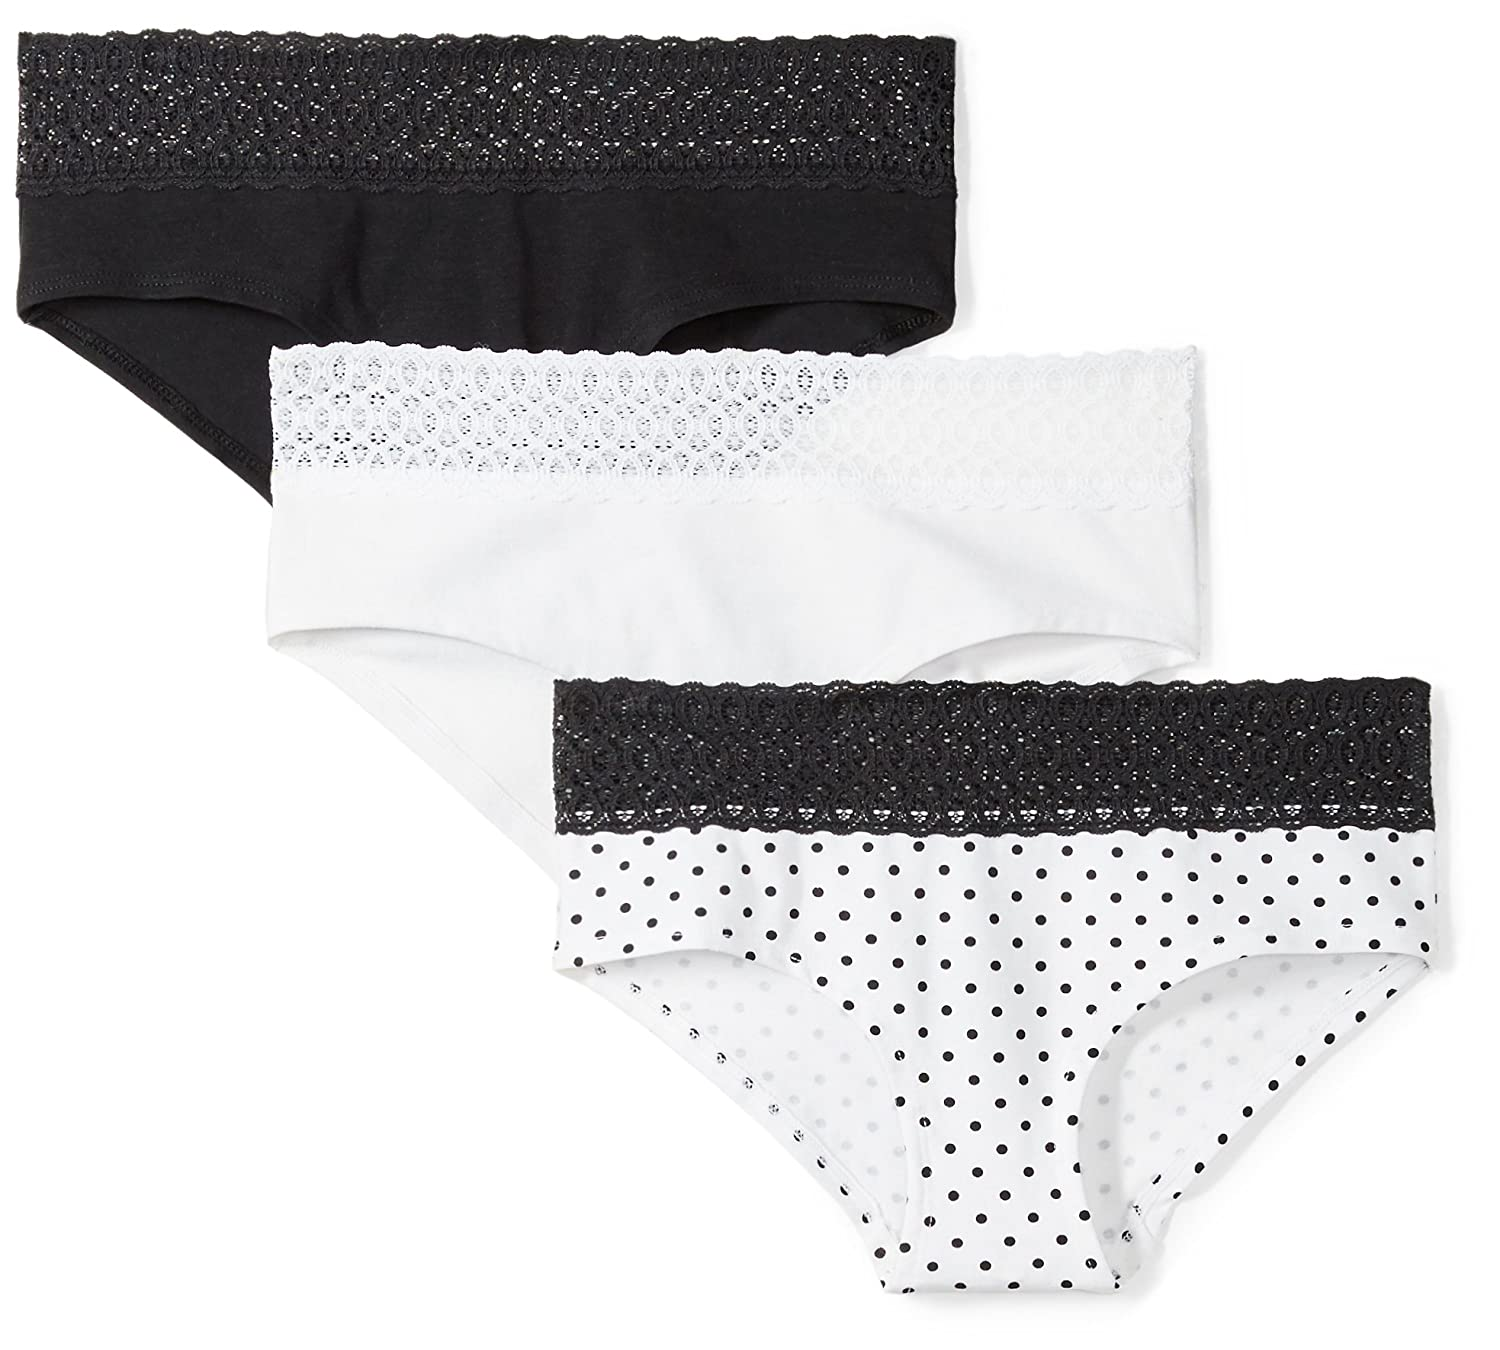 9066655bcfce Amazon.com: Mae Women's Lace Waistband Cotton Hipster Panty, 3 Pack:  Clothing